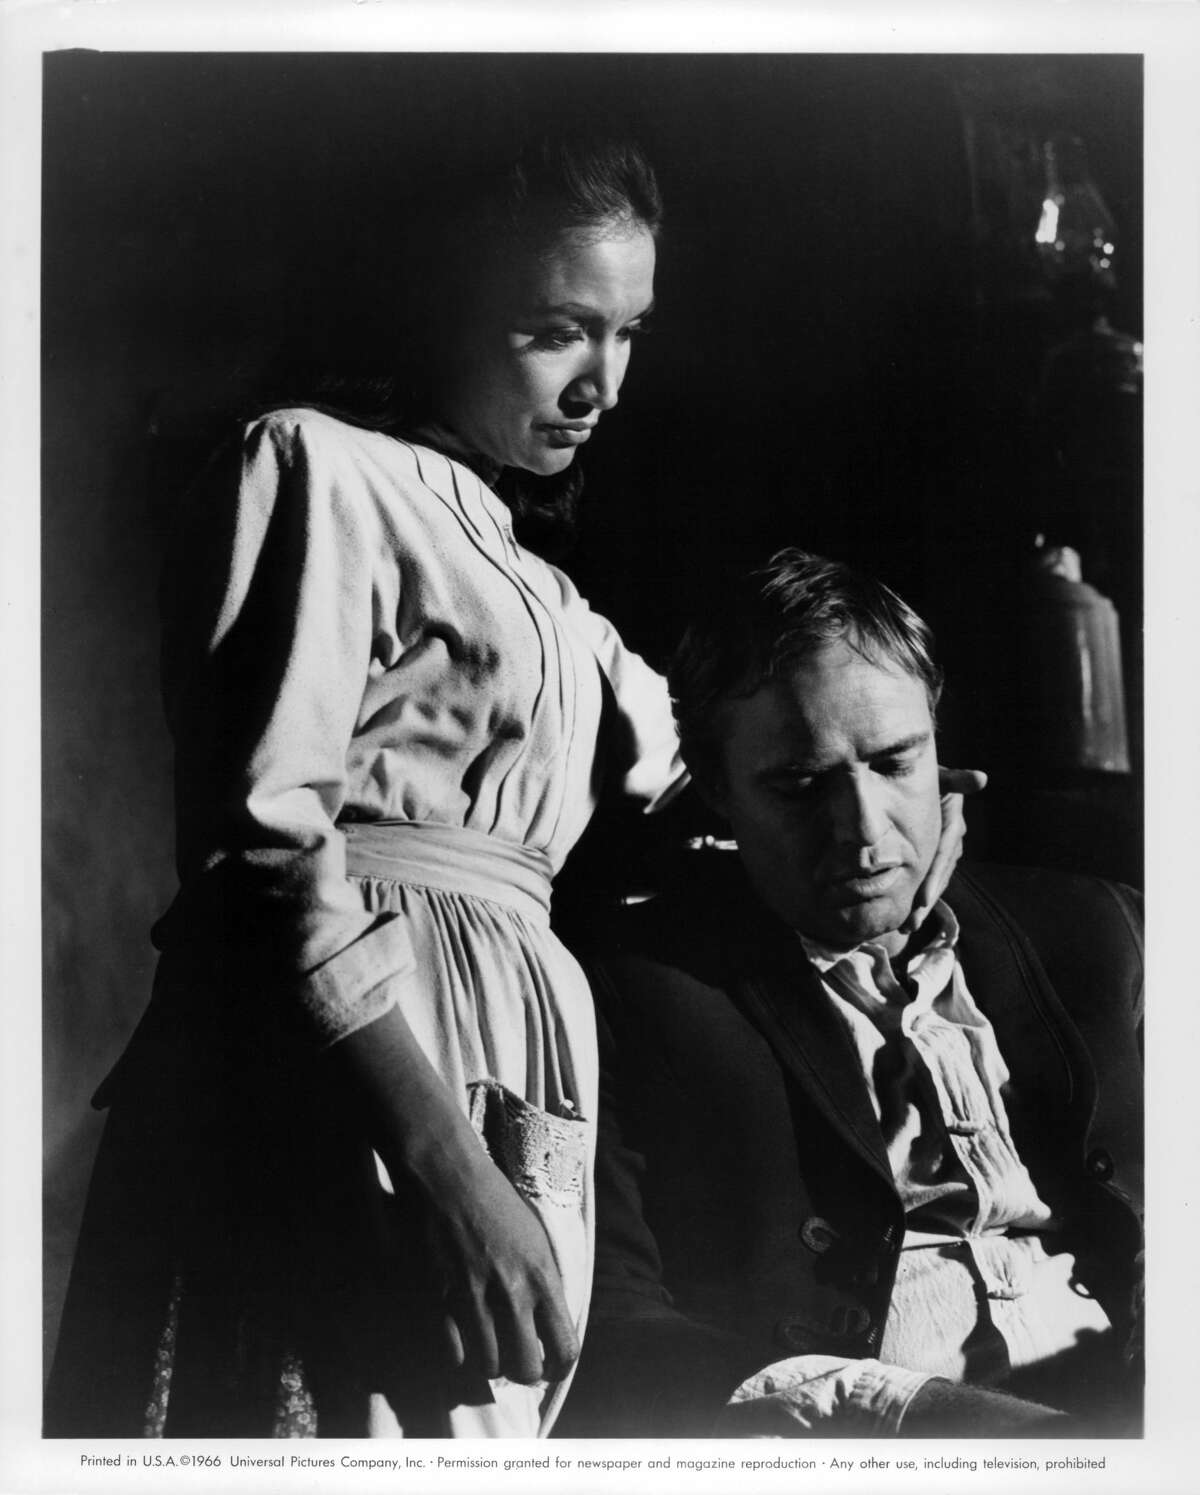 Miriam Colon attempts to give Marlon Brando solace in a scene from the film 'The Appaloosa', 1966. (Photo by Universal/Getty Images)